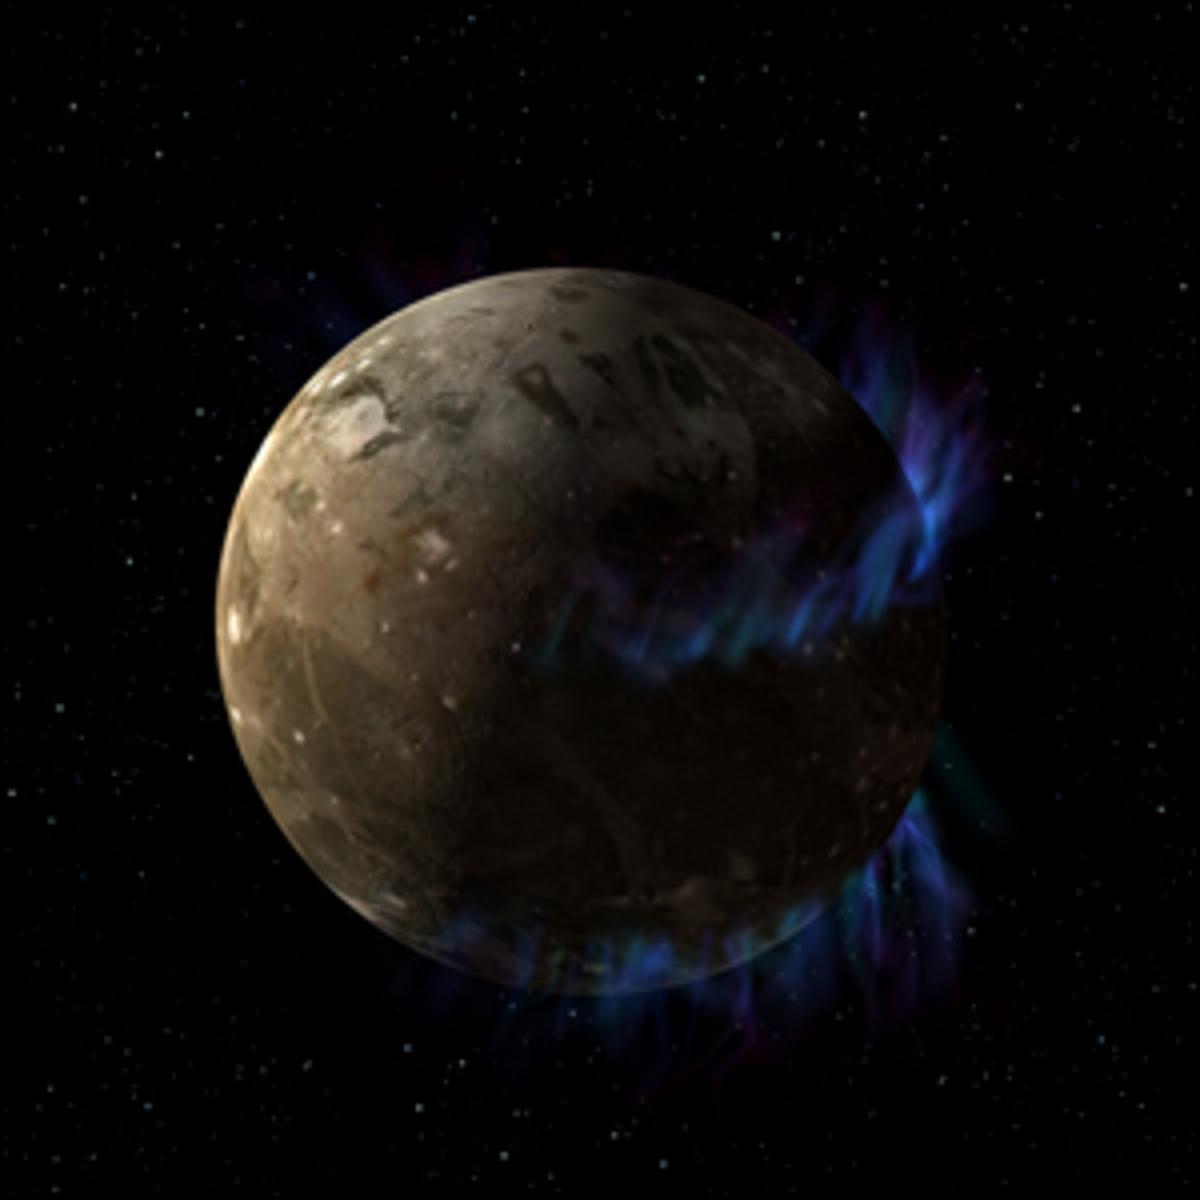 An artist's illustration of the moon Ganymede as it orbits the giant planet Jupiter.